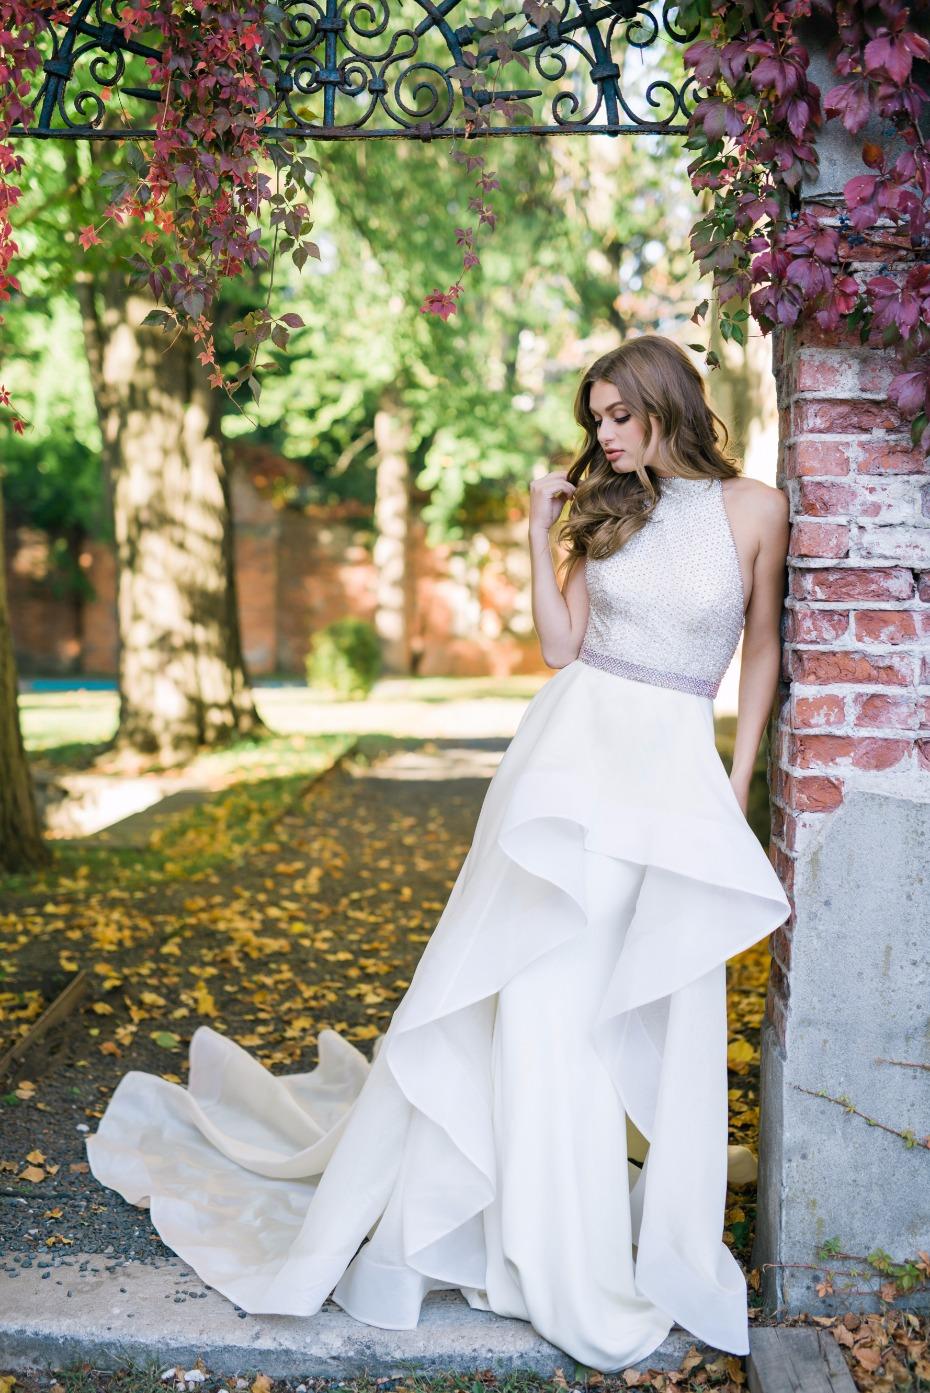 Beautiful floor length fit and flare off white bridal gown with high low skirt and train features embellished sleeveless bodice with high neckline.